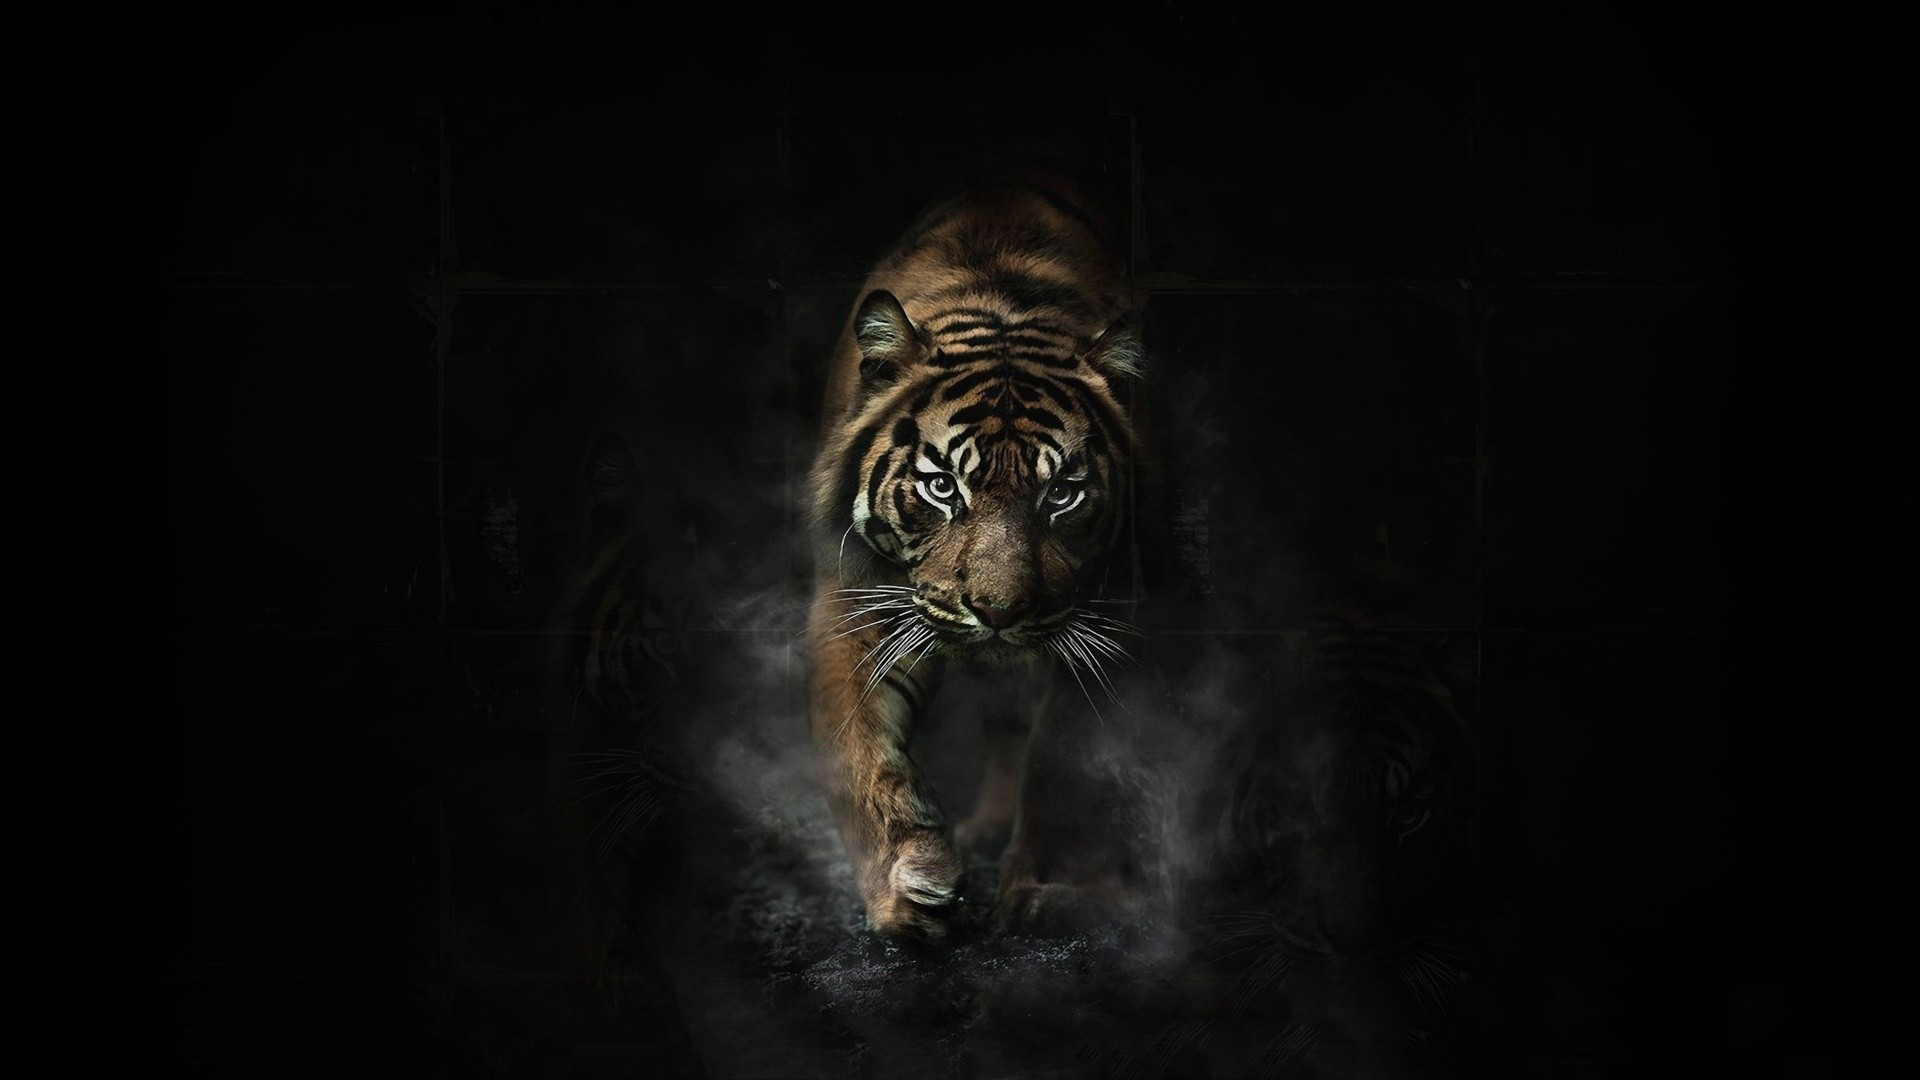 Wallpapers Angry Tiger Hd 1920×1080